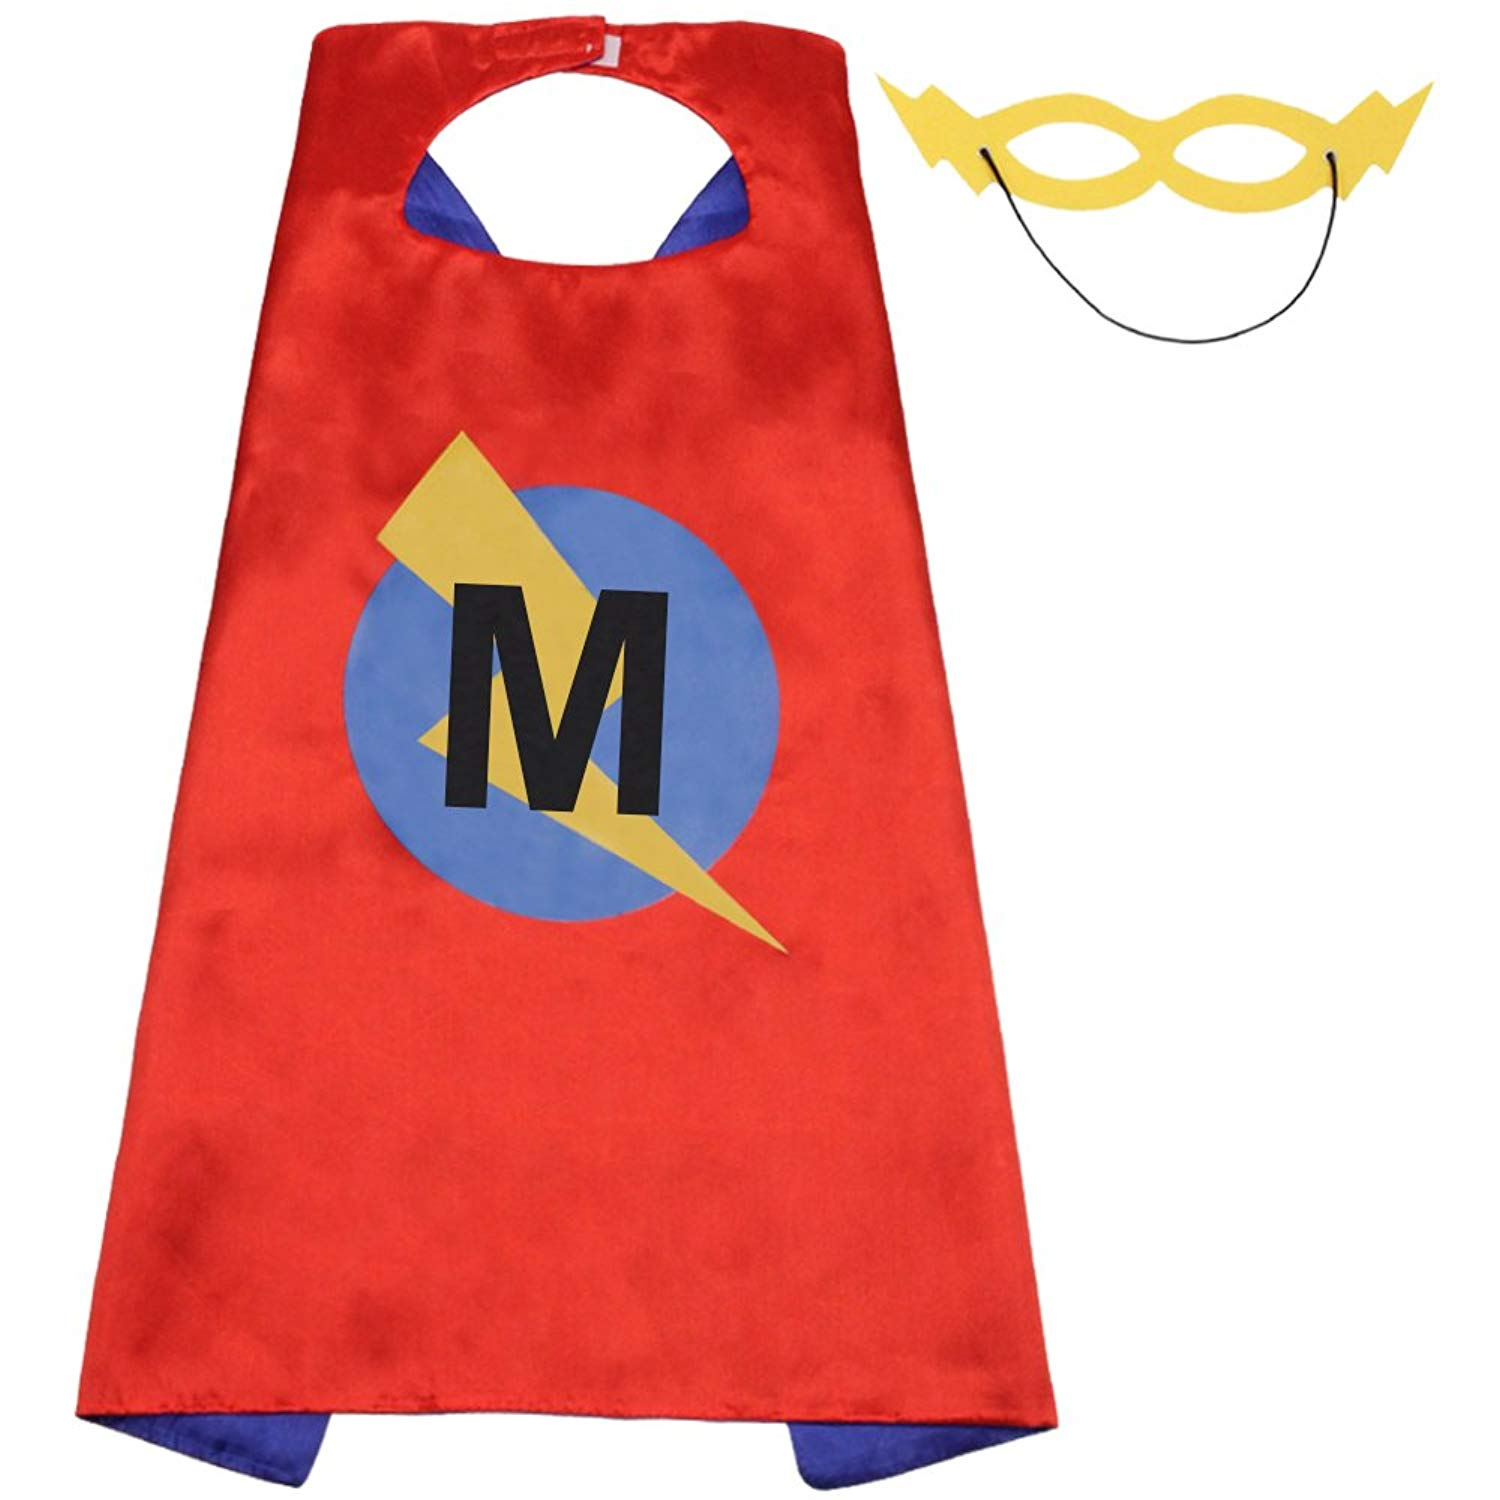 47b07daf8f80e Get Quotations · LYNDA SUTTON Kids Adult Superhero Capes with 25 Letter  Initial Cape Red   Blue Cape